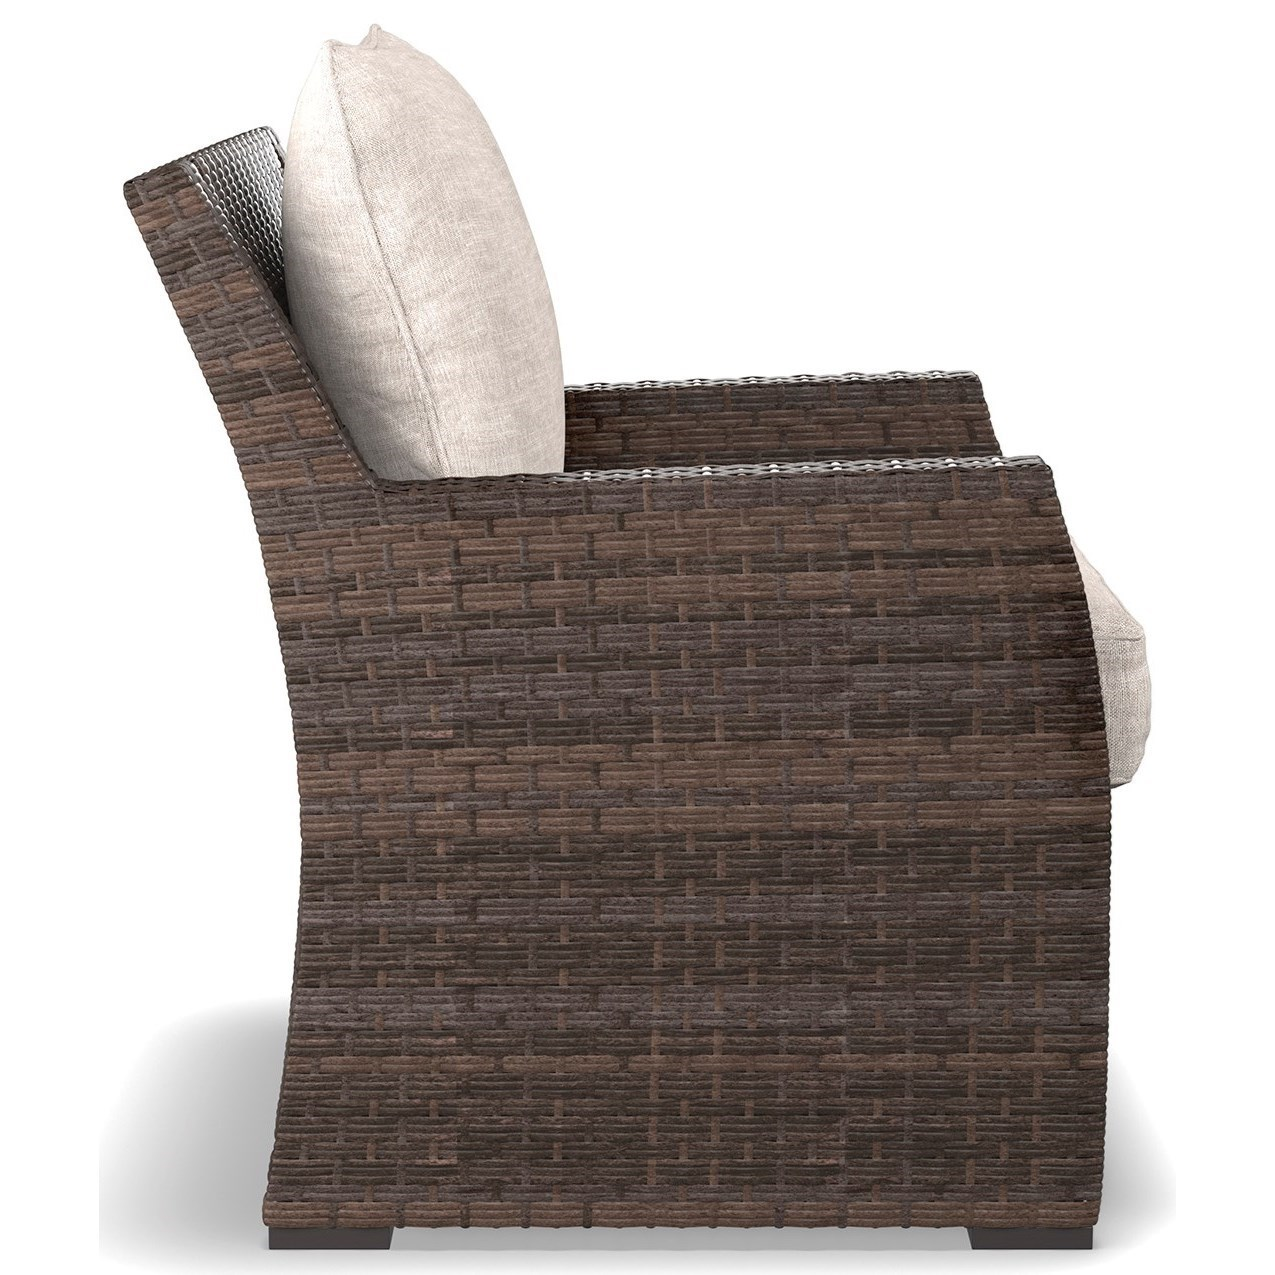 ... Signature Design by Ashley SalcedaOutdoor Lounge Chair with Cushion ...  sc 1 st  John V Schultz Furniture & Signature Design by Ashley Salceda P451-821 Outdoor Lounge Chair ...